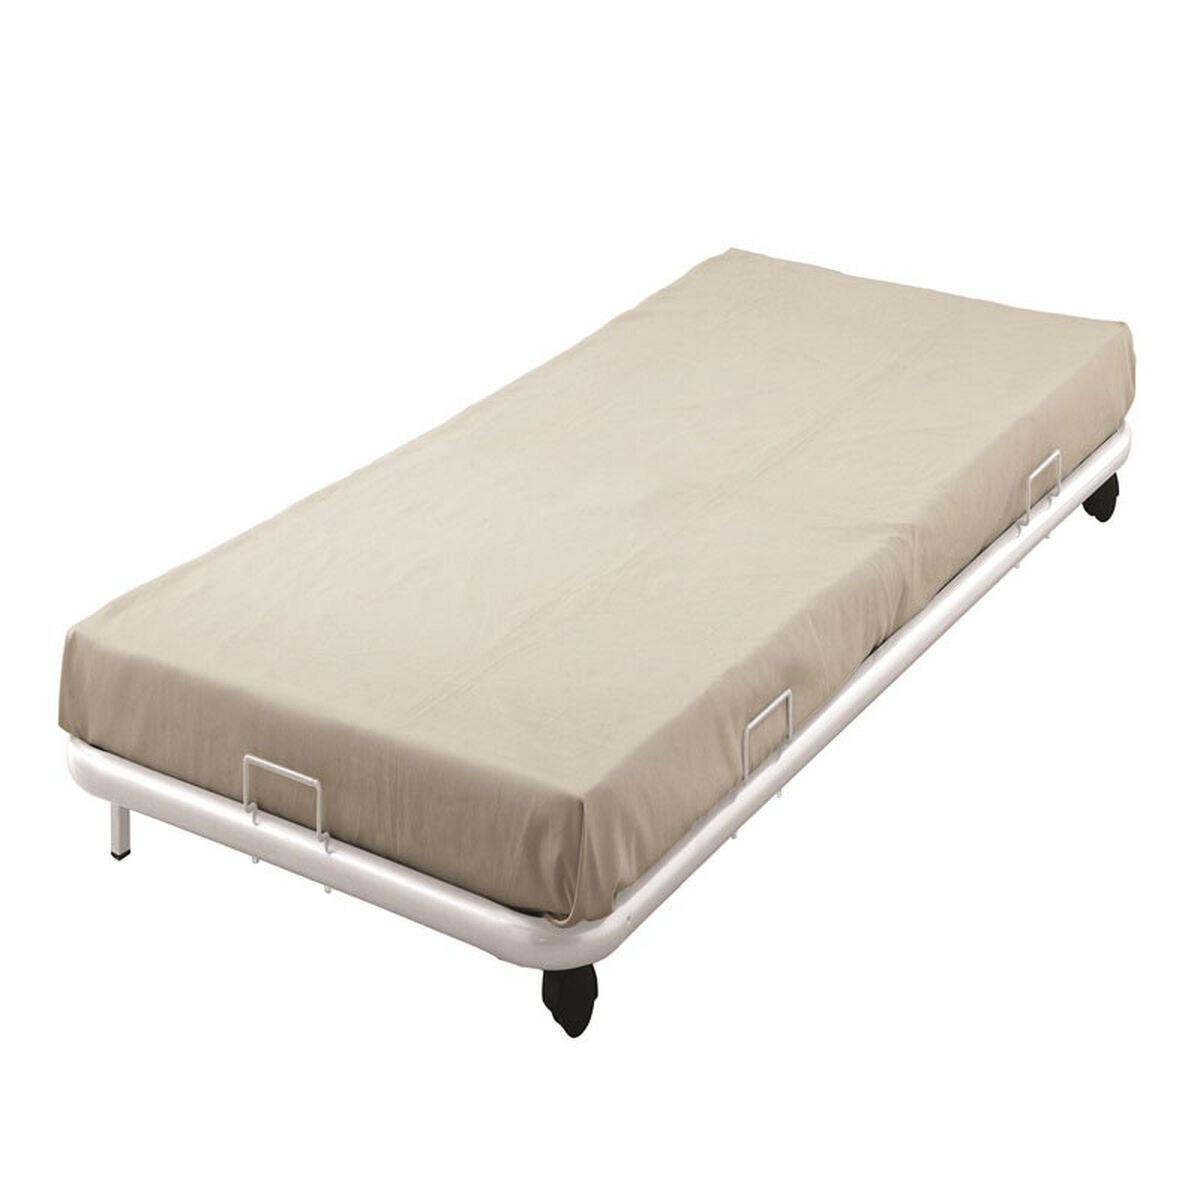 Our Cailyn Metal Trundle Bed With Casters Full White Is On Now